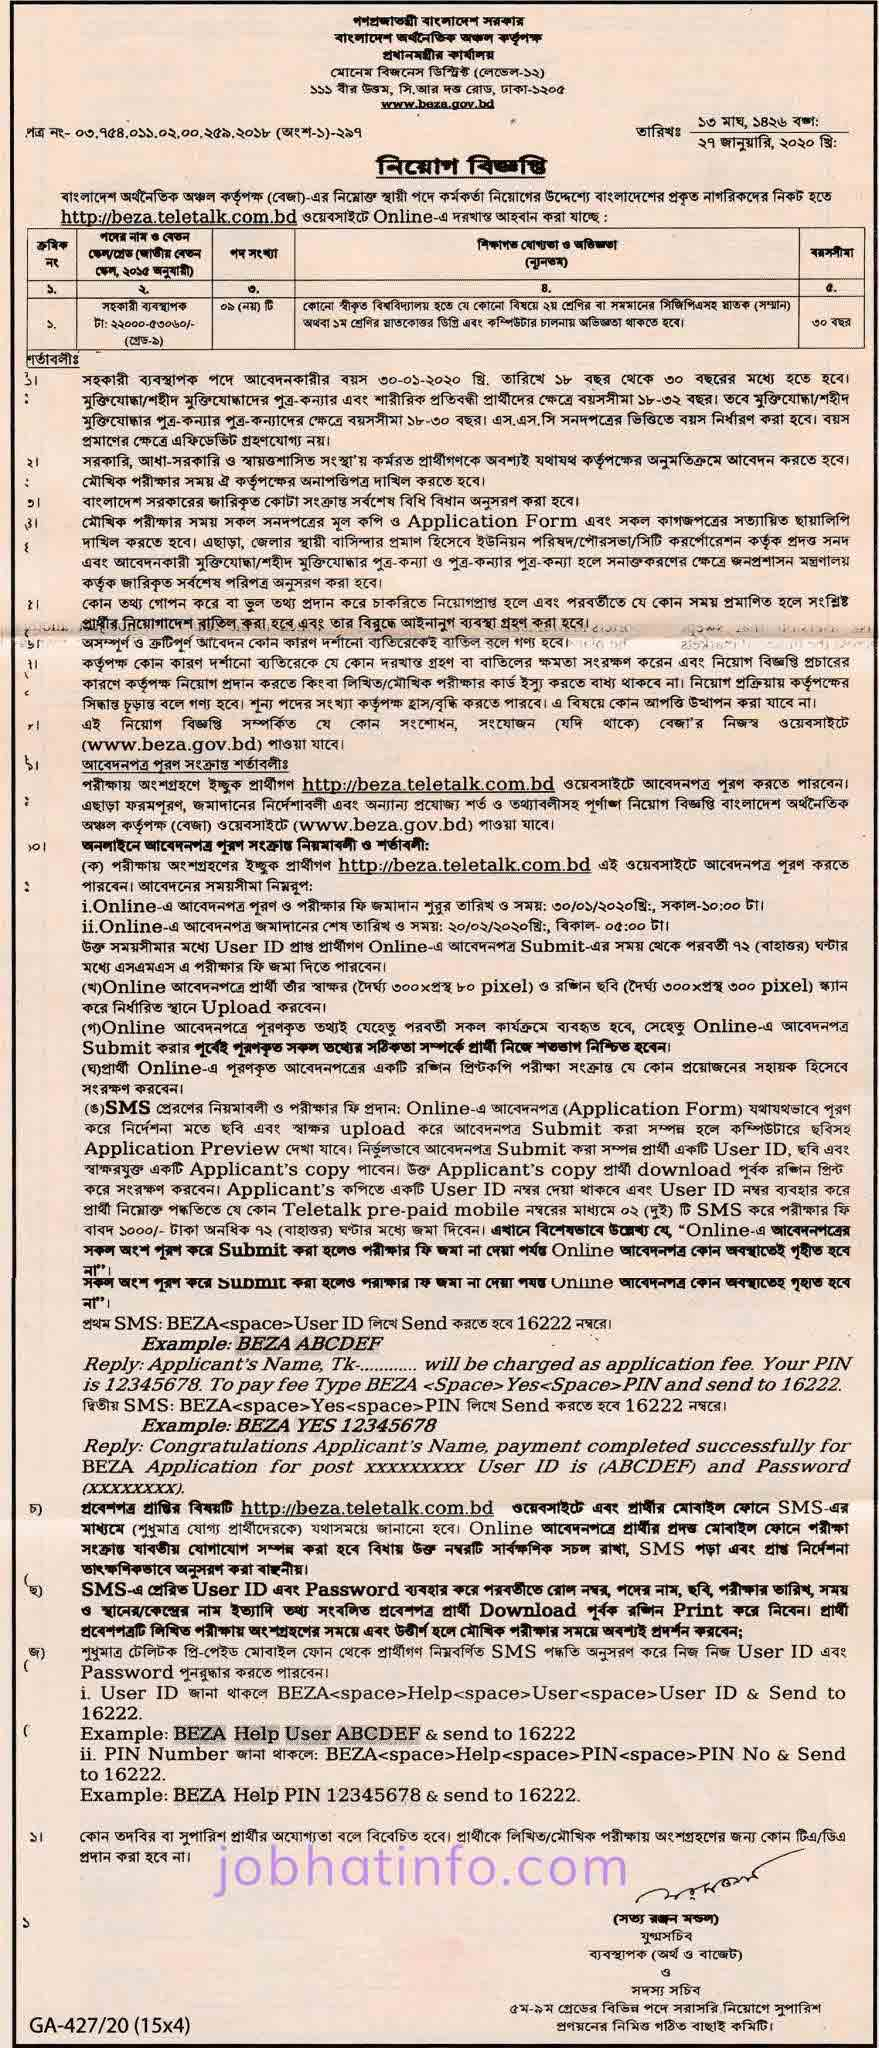 Bangladesh Economic Zone Authority Job Circular 2